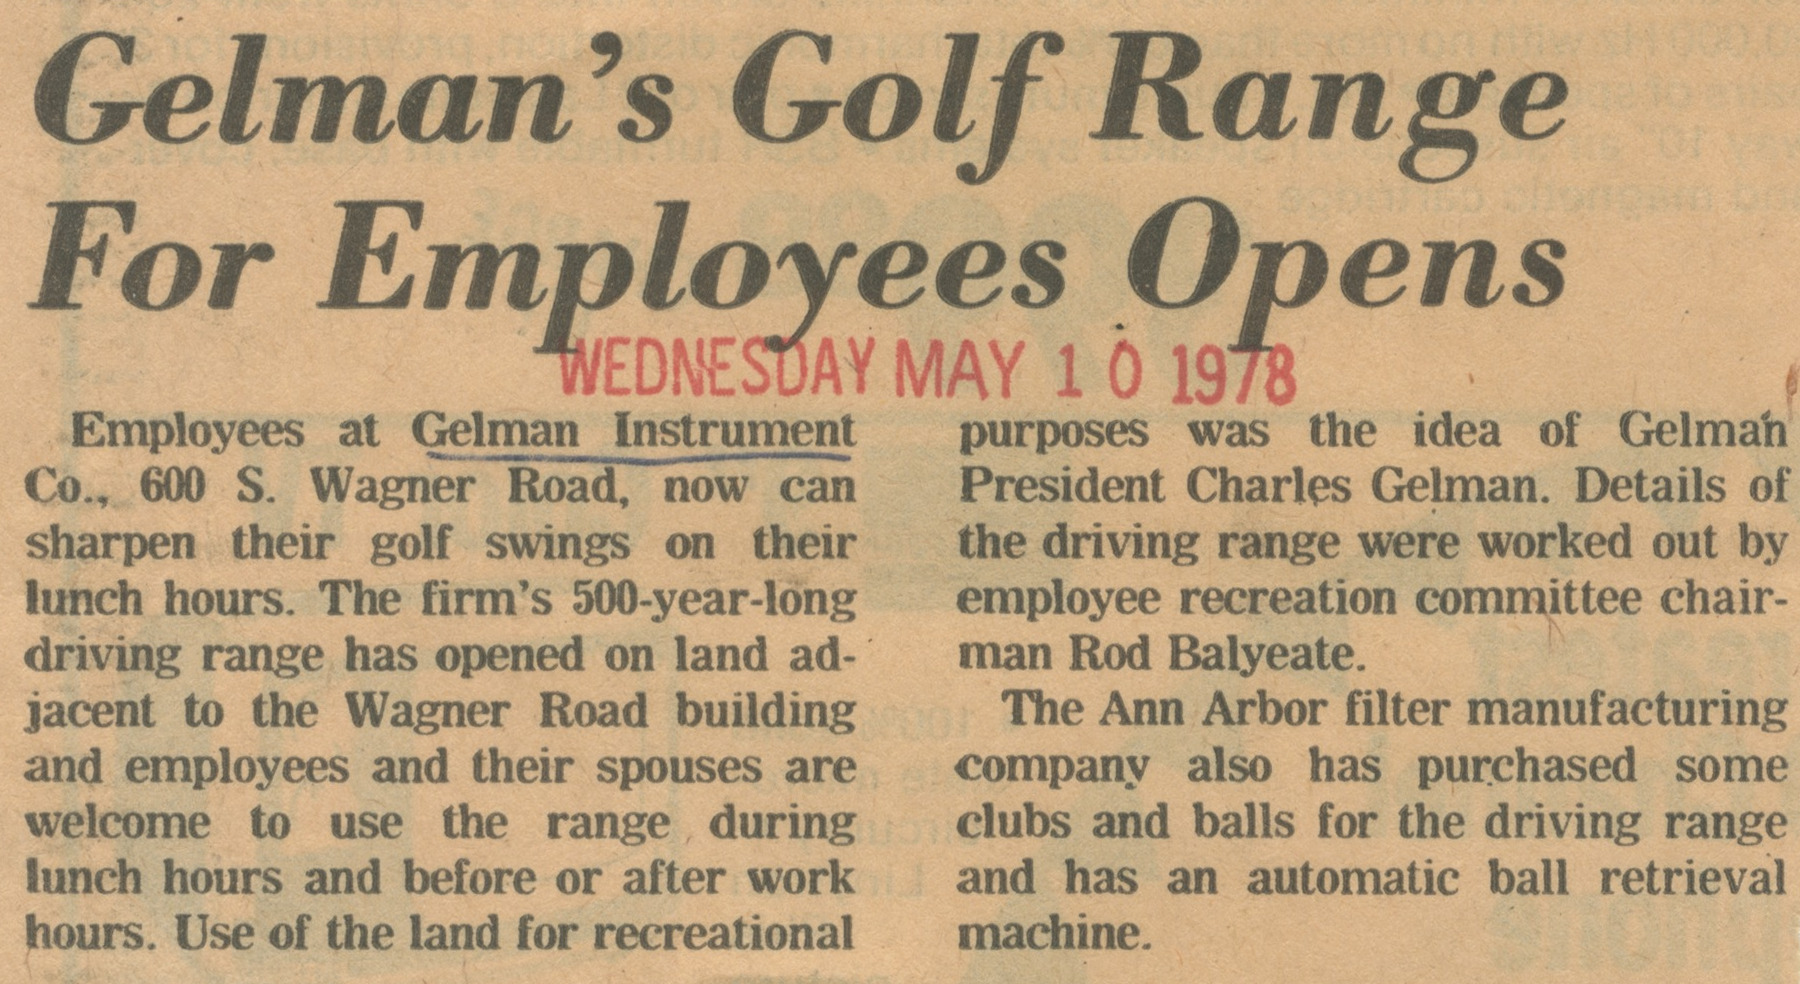 Gelman's Golf Course For Employees Opens image